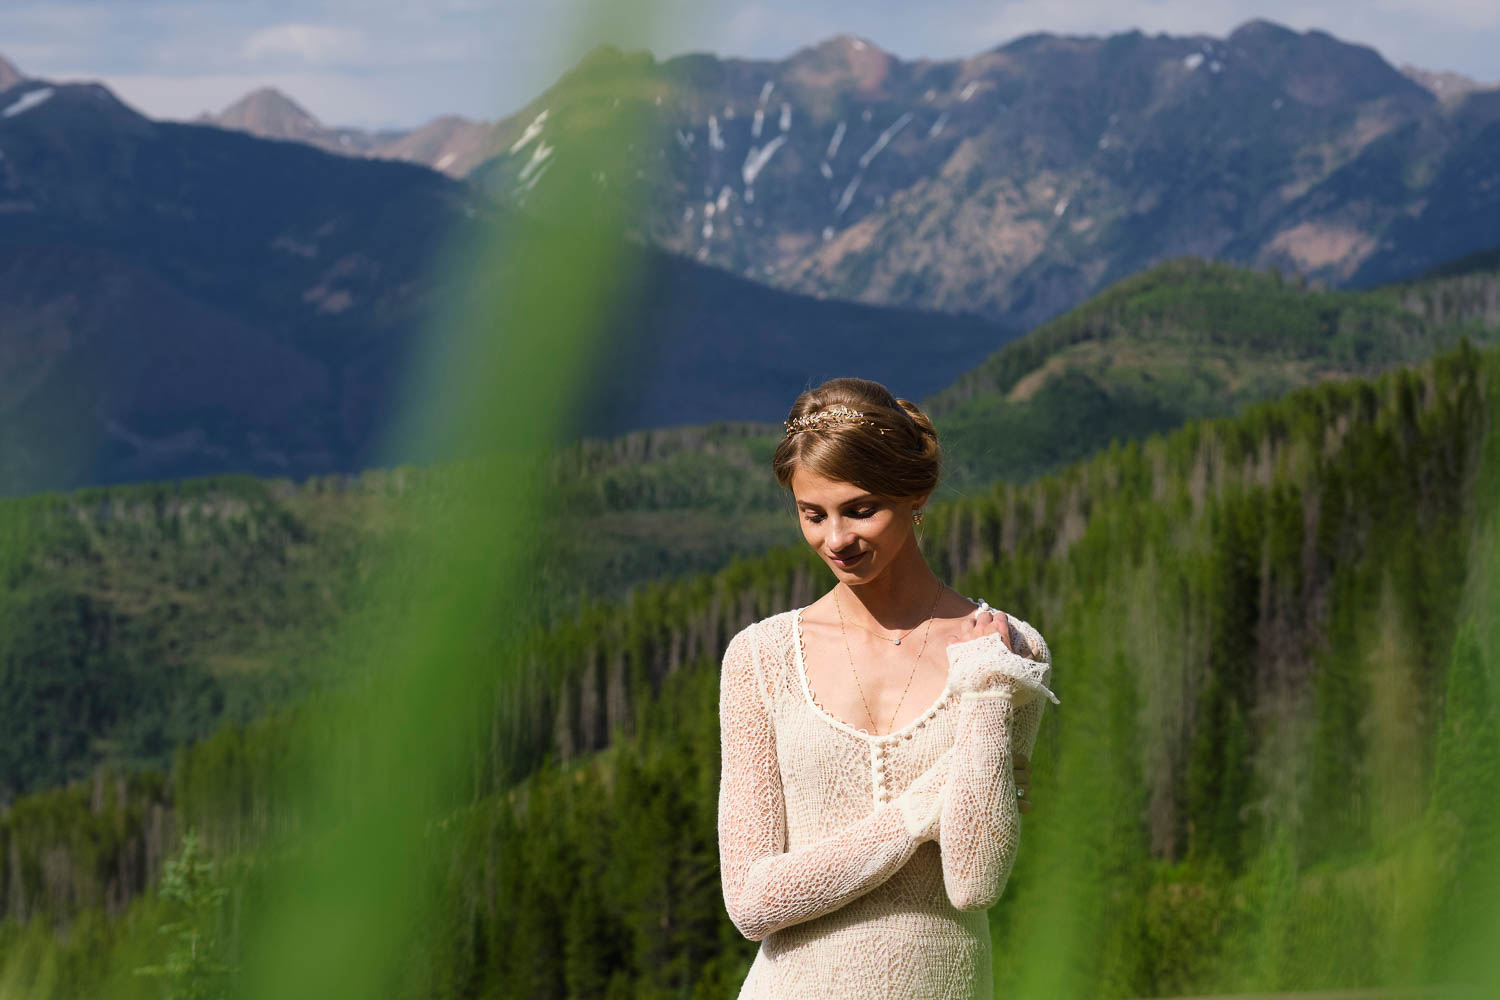 Anna Selzneva poses against mountain backdrop in Vail.  Fashion model Anna Selezneva's wedding in Vail Colorado.  Wedding ceremony at the Vail Chapel.  Wedding reception at The 10th on Vail Ski Resort.